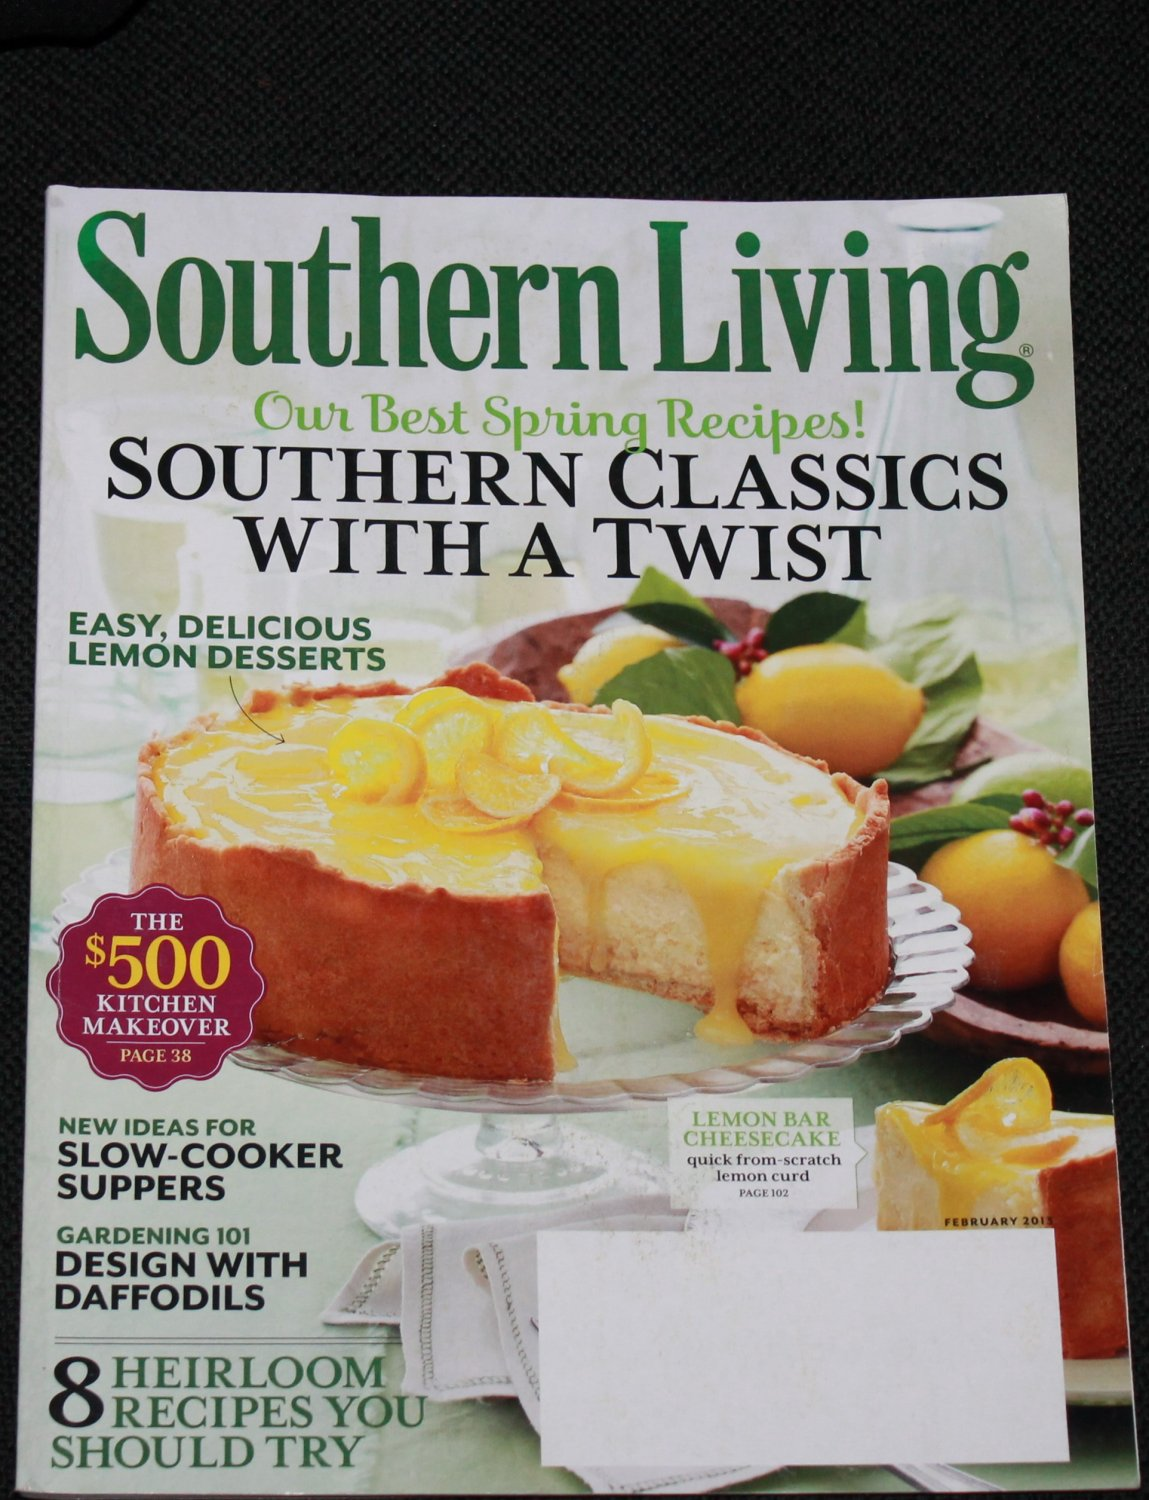 Southern Living Magazine - Issue: Vol.48 Number 2  - February 2013